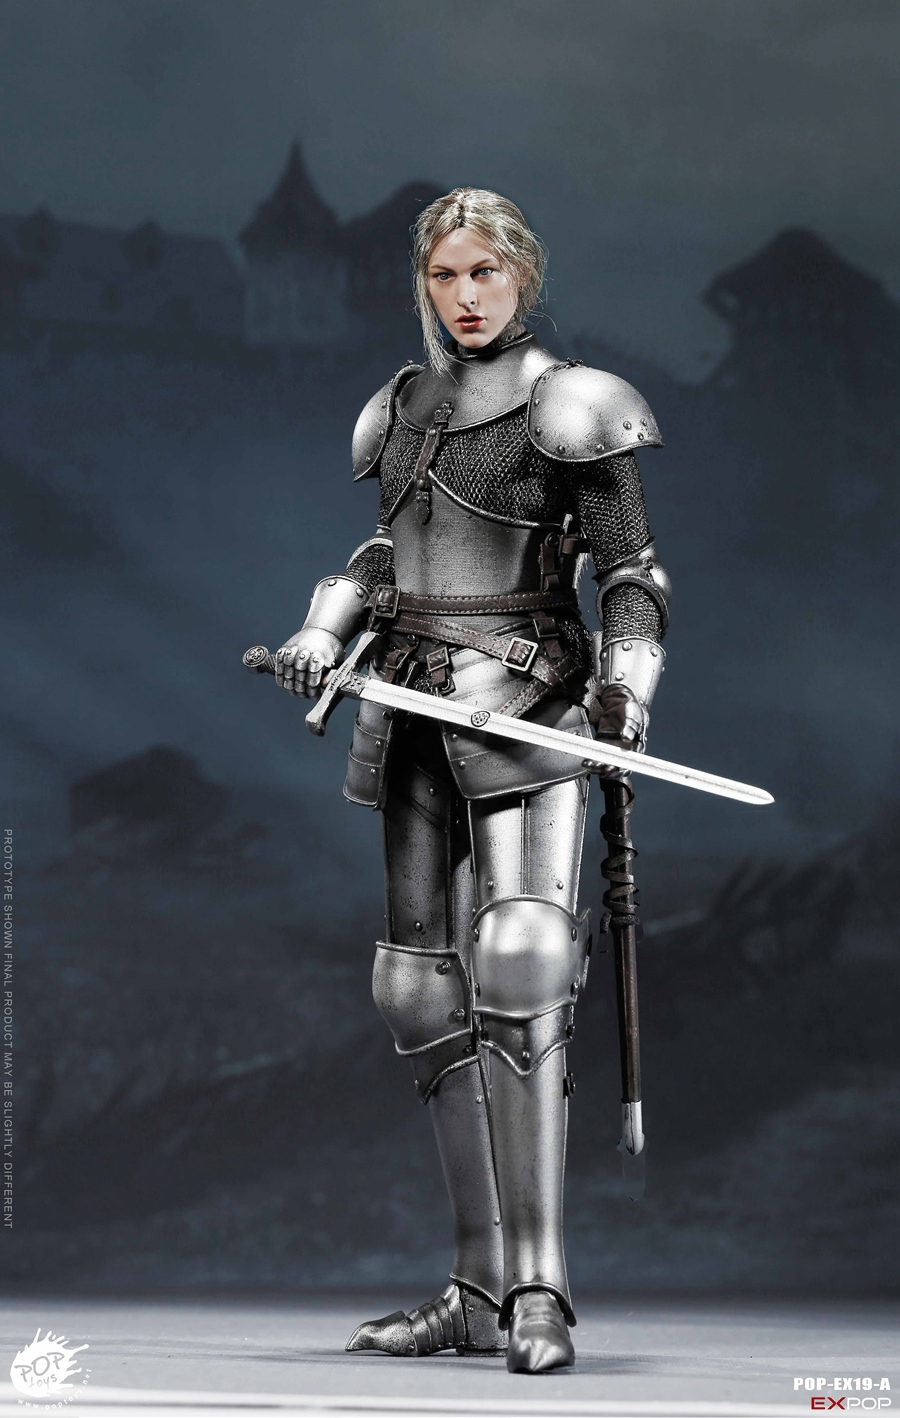 knight - NEW PRODUCT: POPTOYS New Products: 1/6 St. Knights - Assault Edition & Triumph Edition & Iron Armor (POP-EX19 ABC) 150